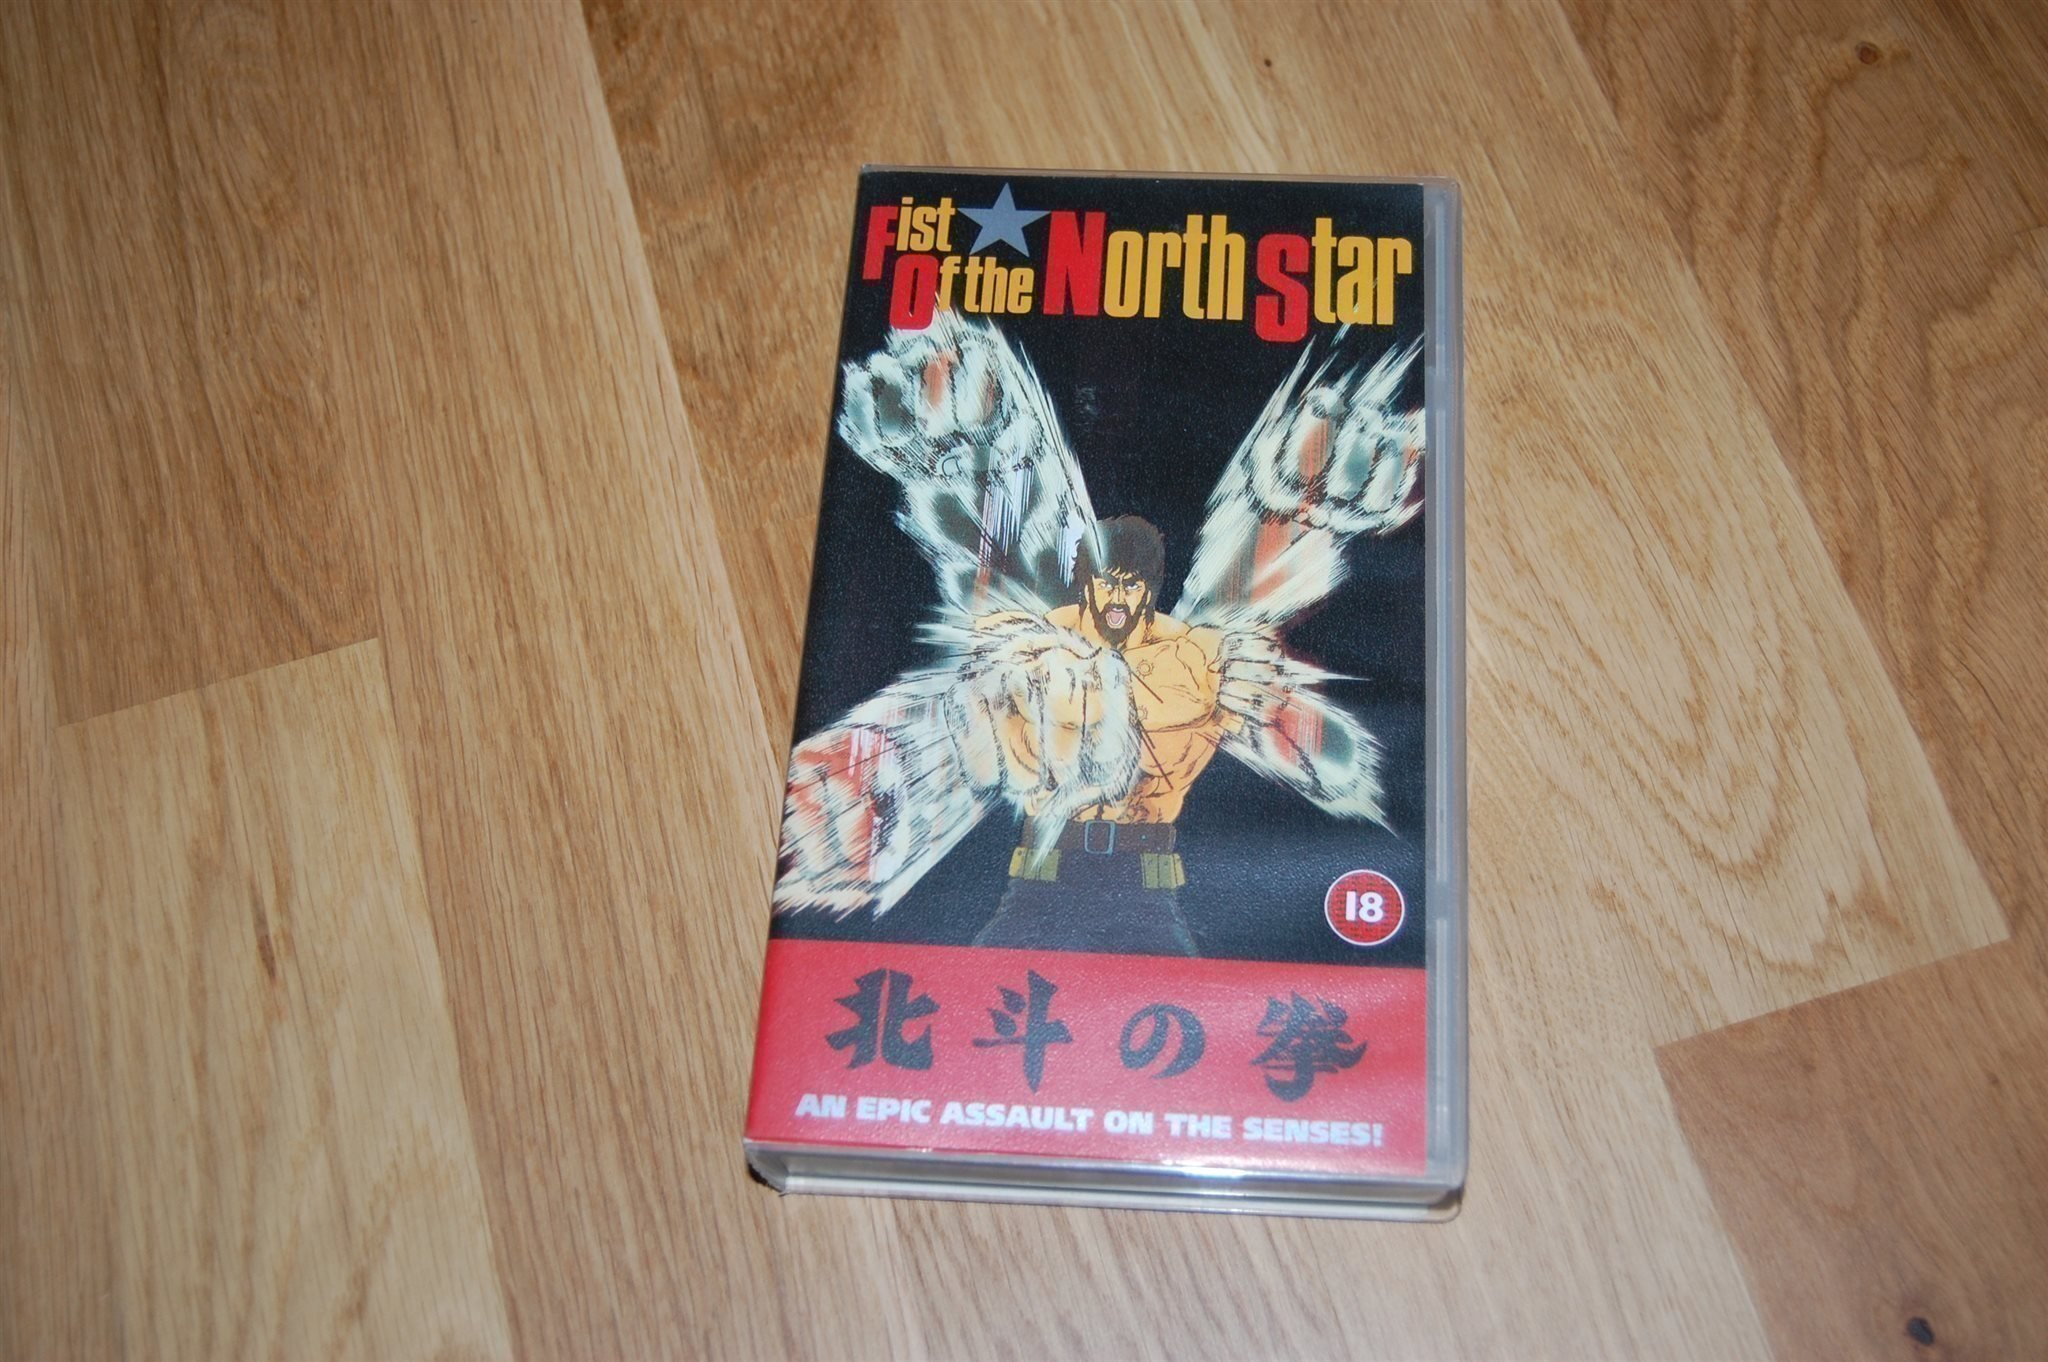 2st Fist of the North Star, VHS filmer, Manga v   (349937684) ᐈ Köp